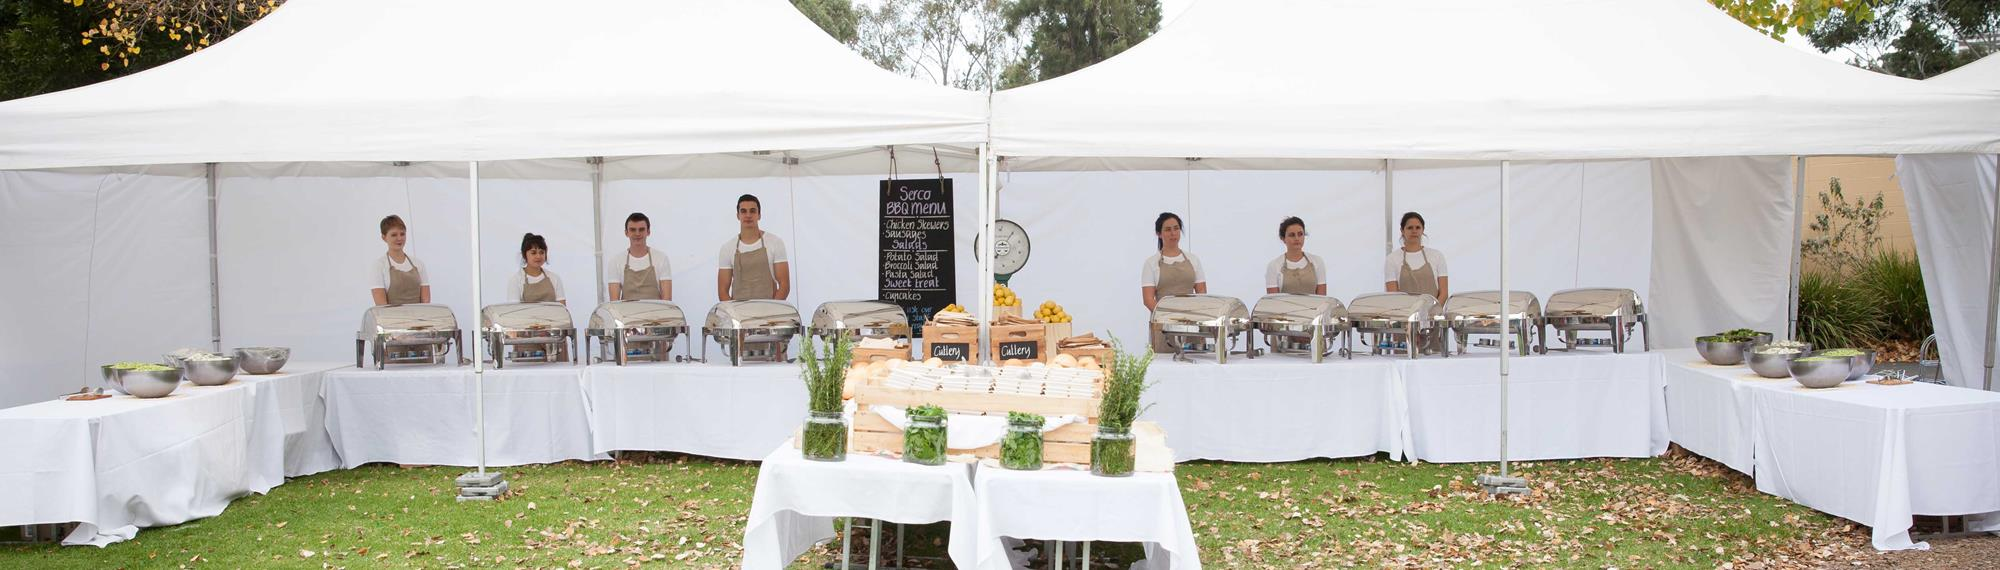 Marques provide a shady outdoor location to have a buffet style lunch for your next private event.